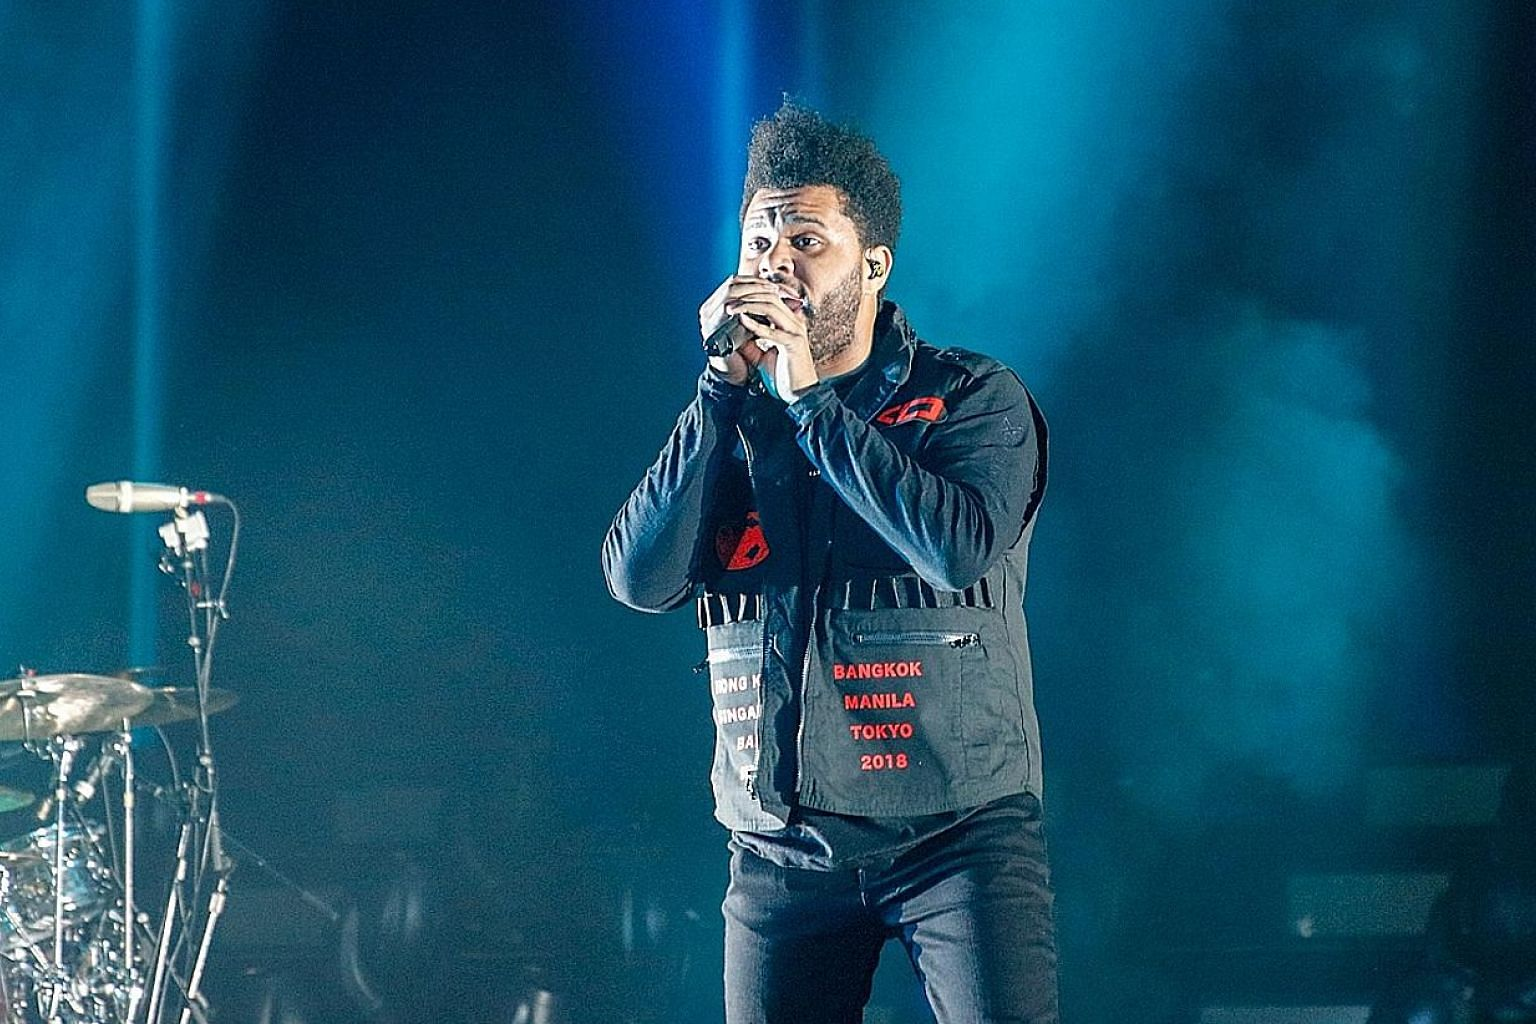 During the concert, which lasted more than 80 minutes, The Weeknd covered R&B, rap, electronica and mainstream pop numbers.